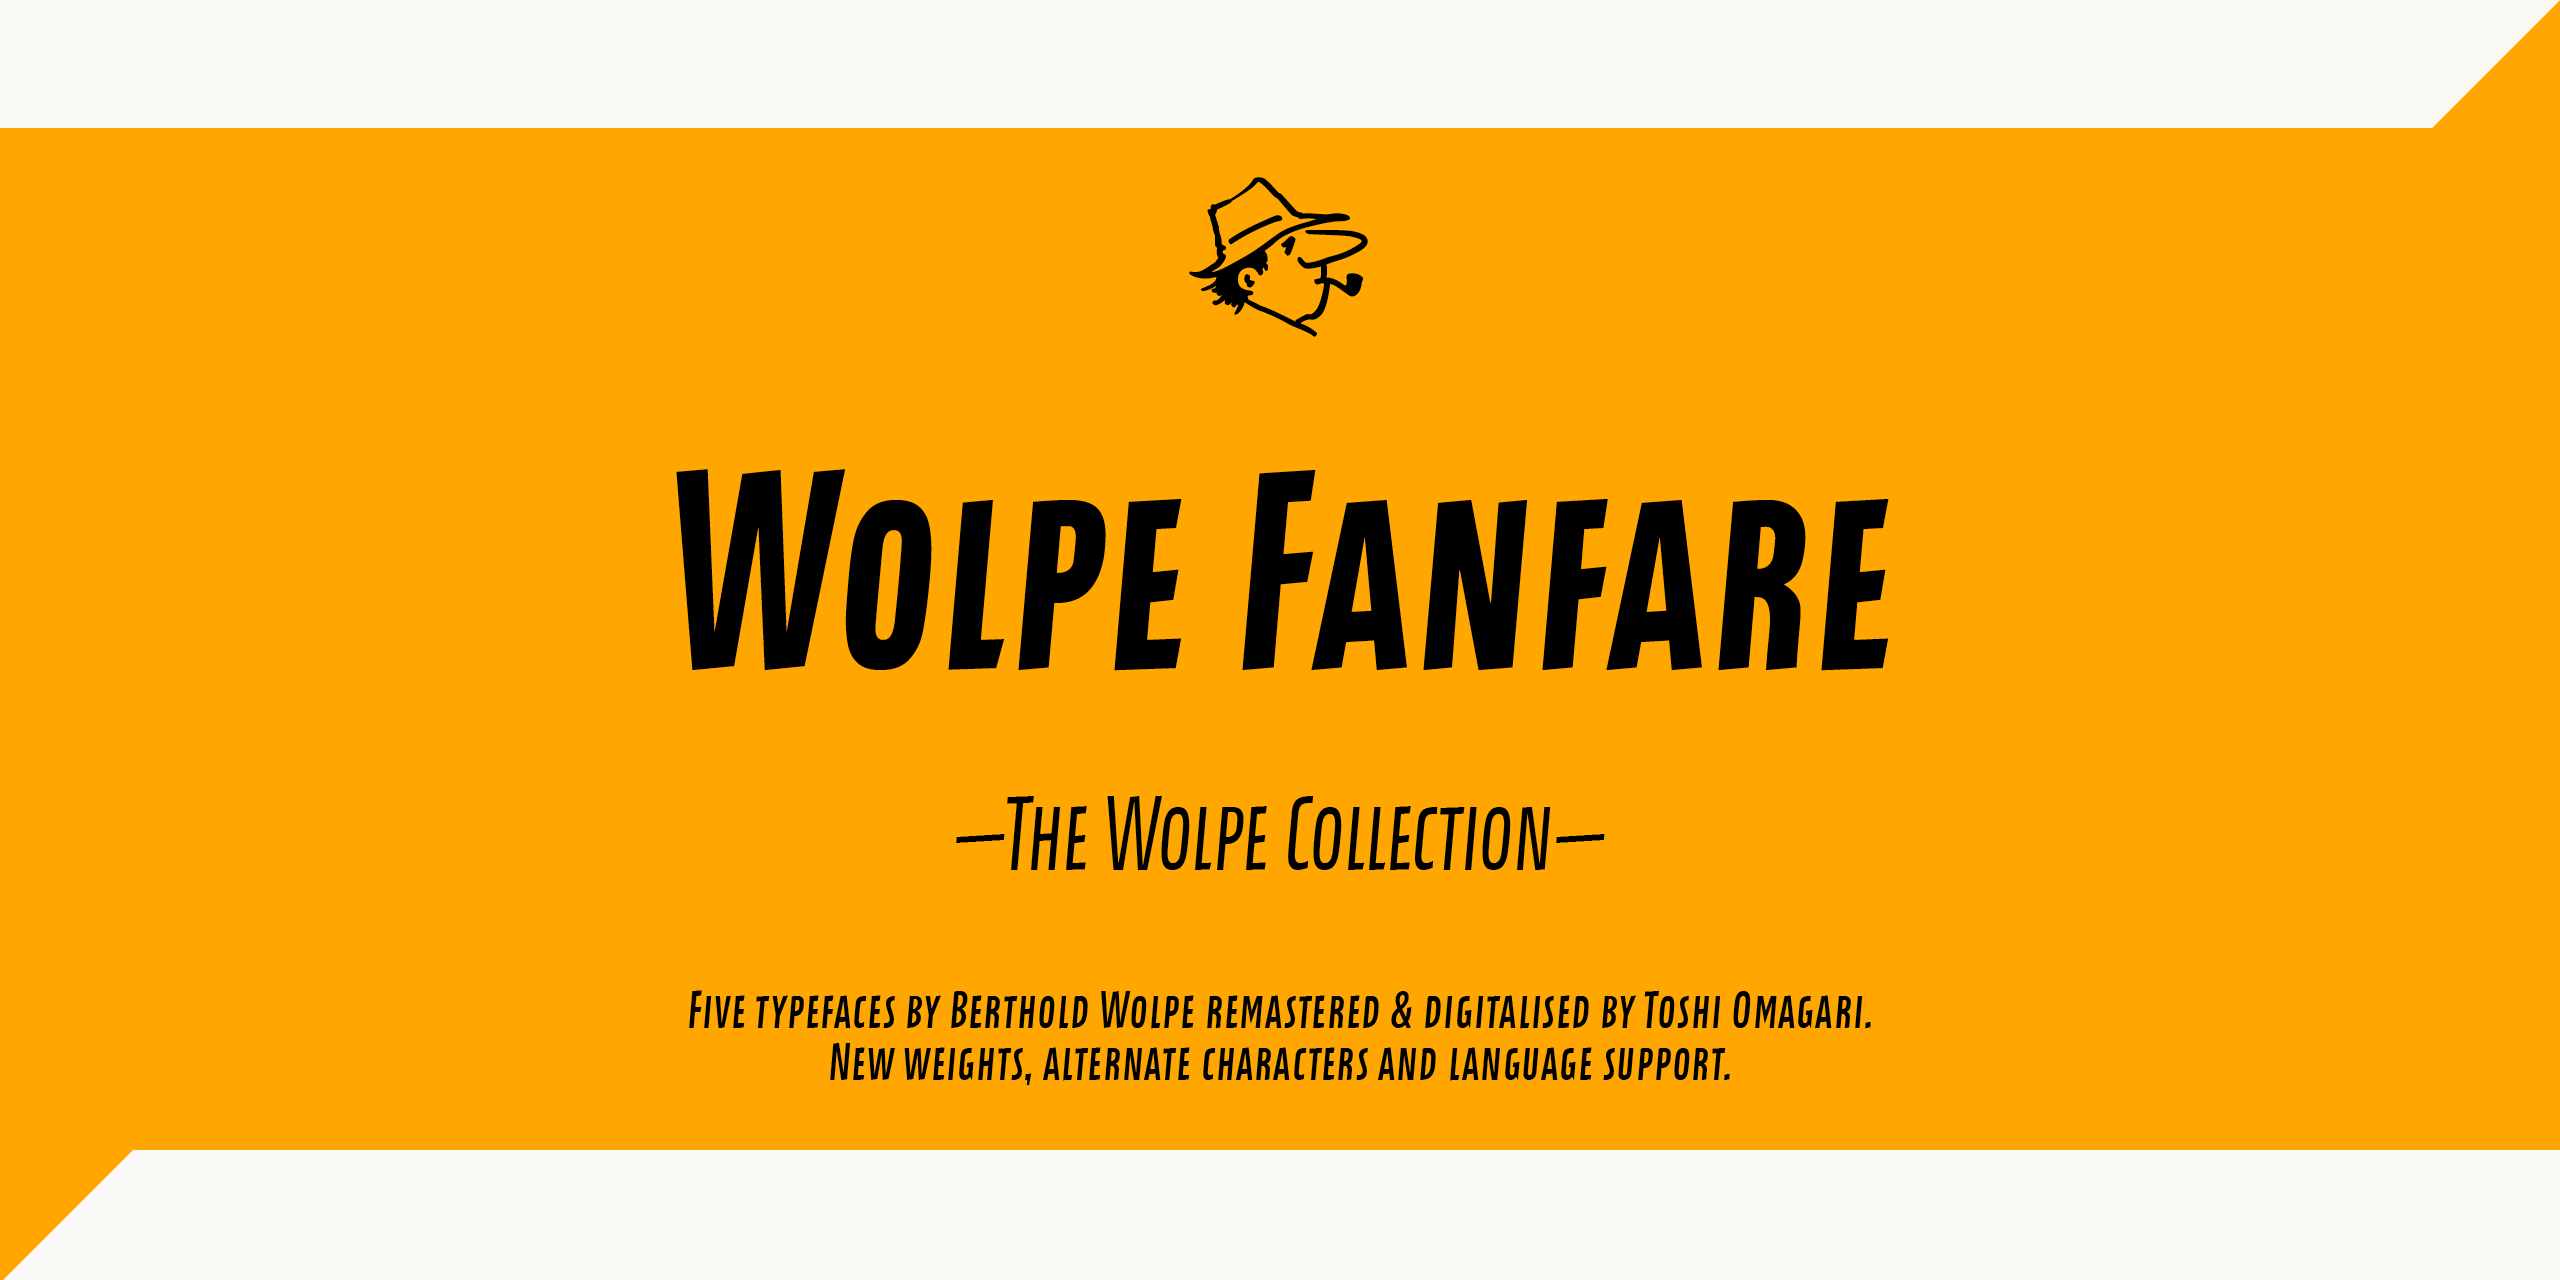 The Wolpe Collection – Wolpe Fanfare